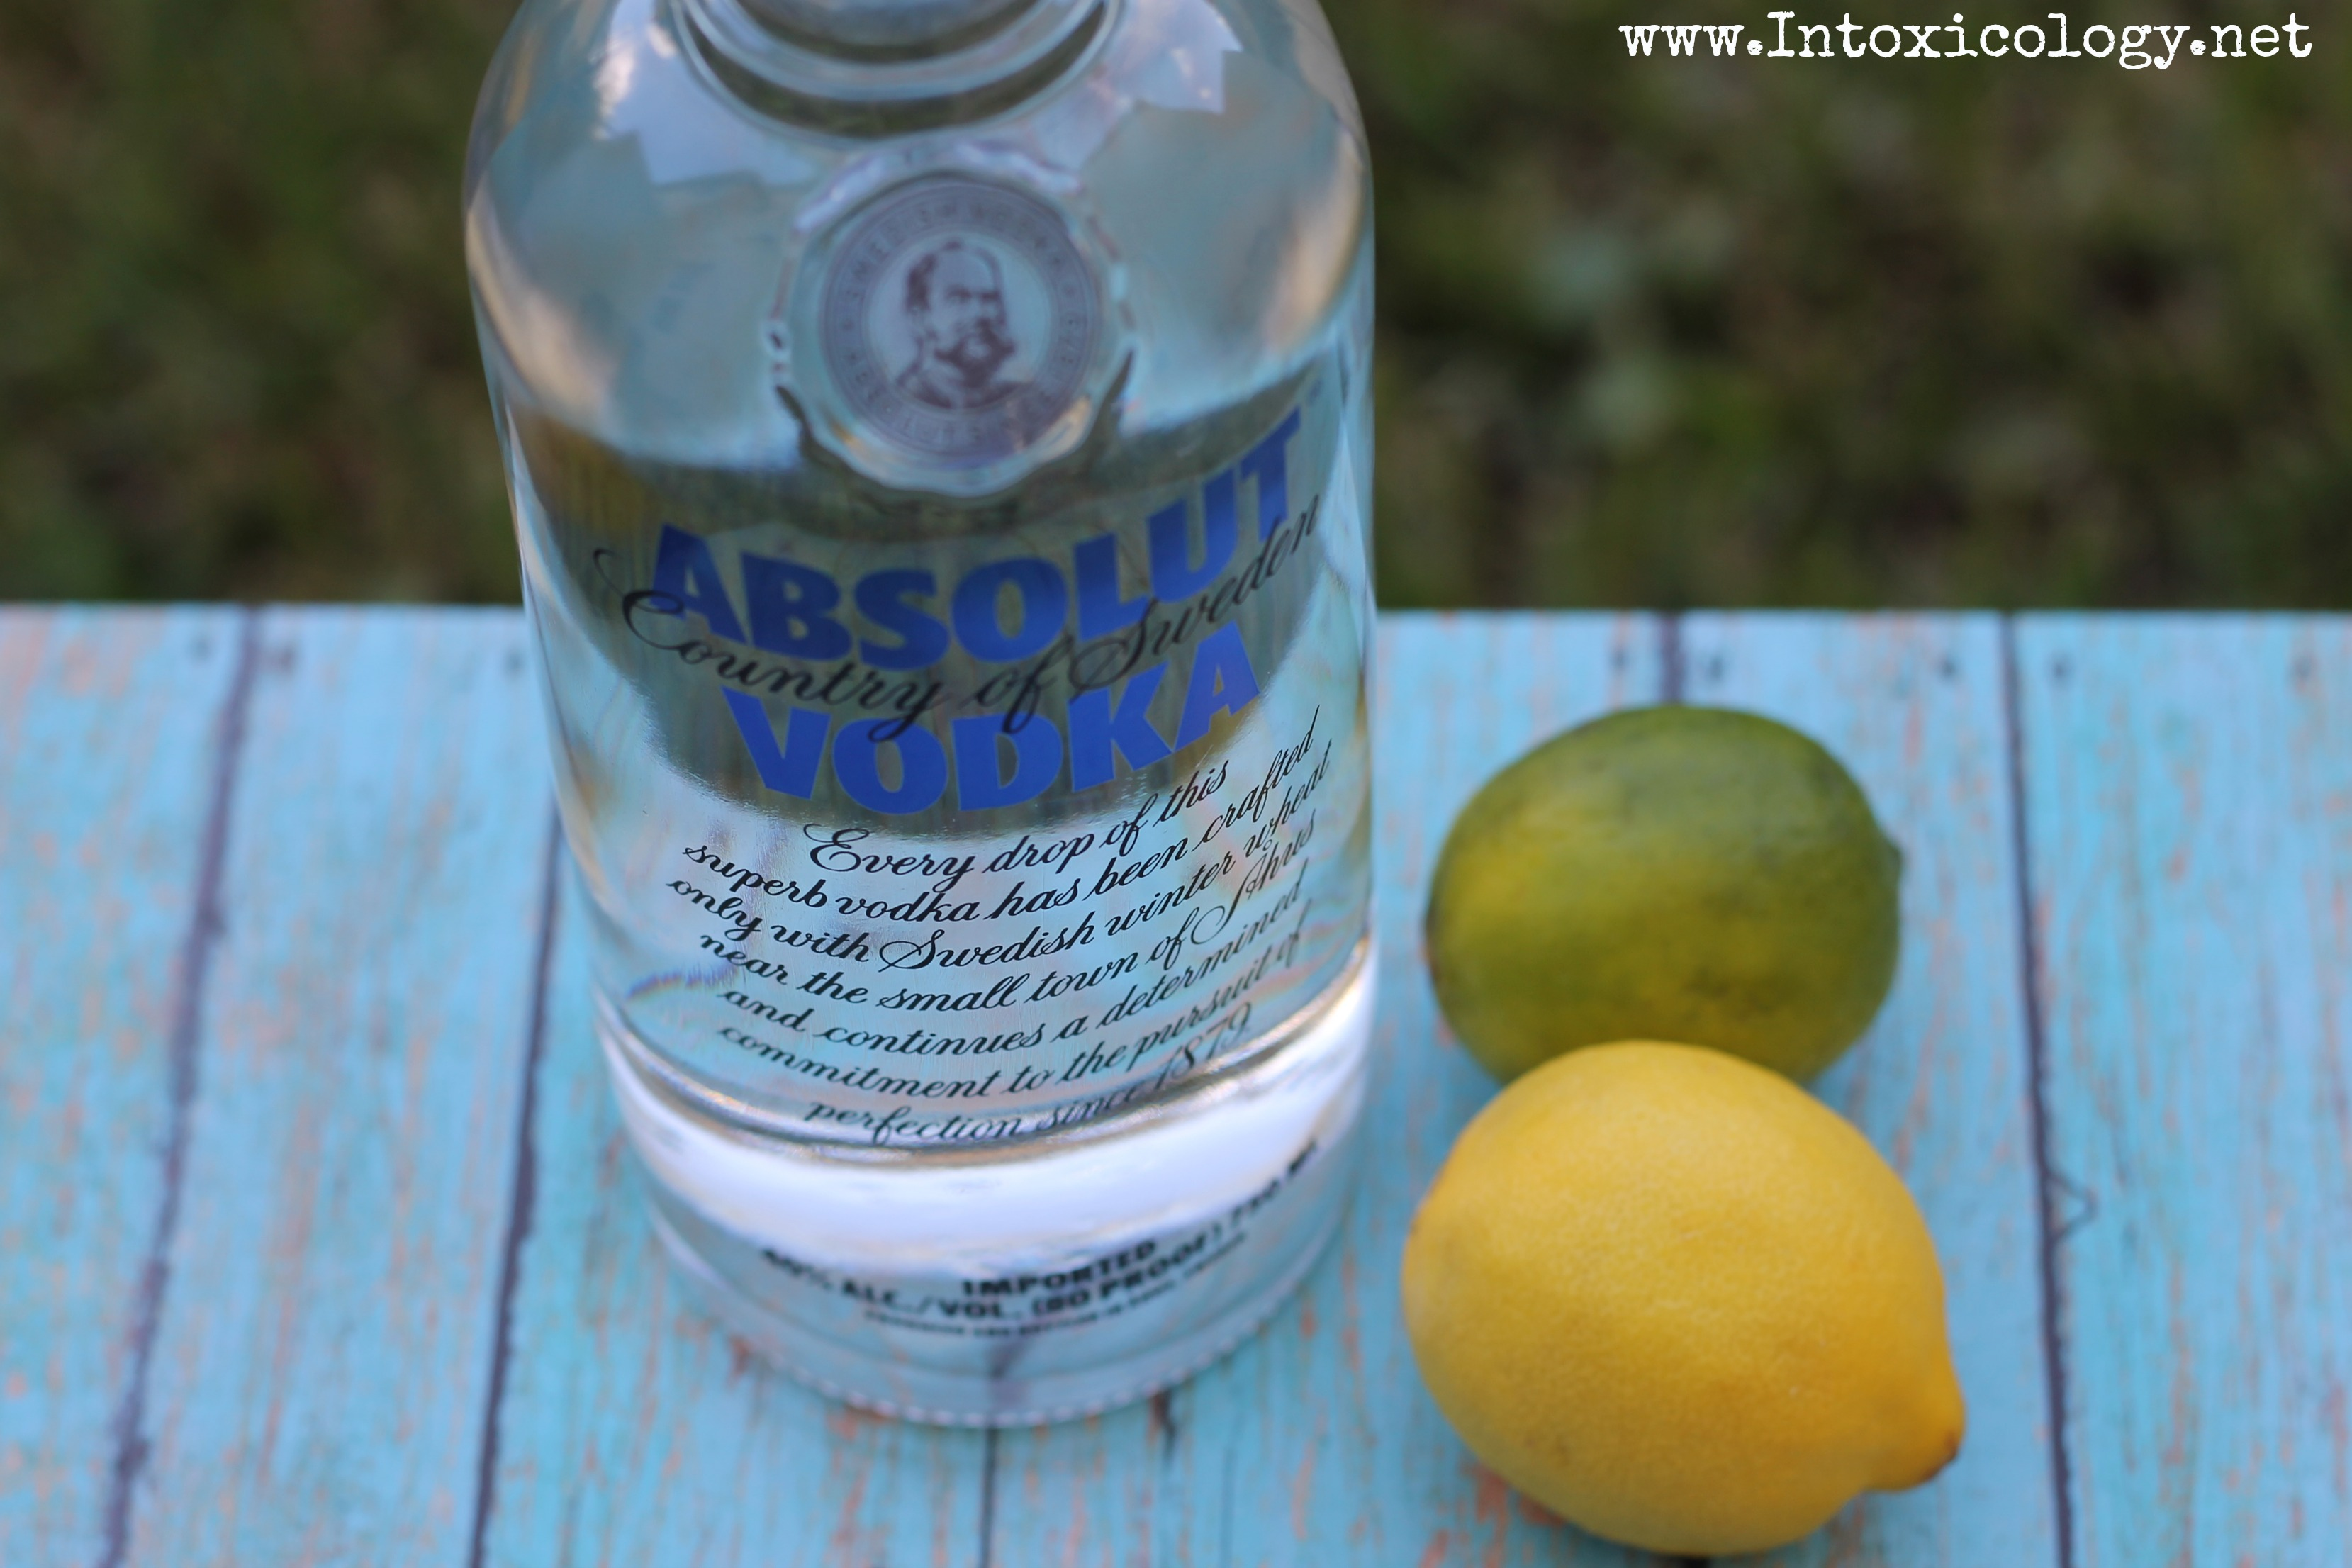 Review: Absolut Vodka Original